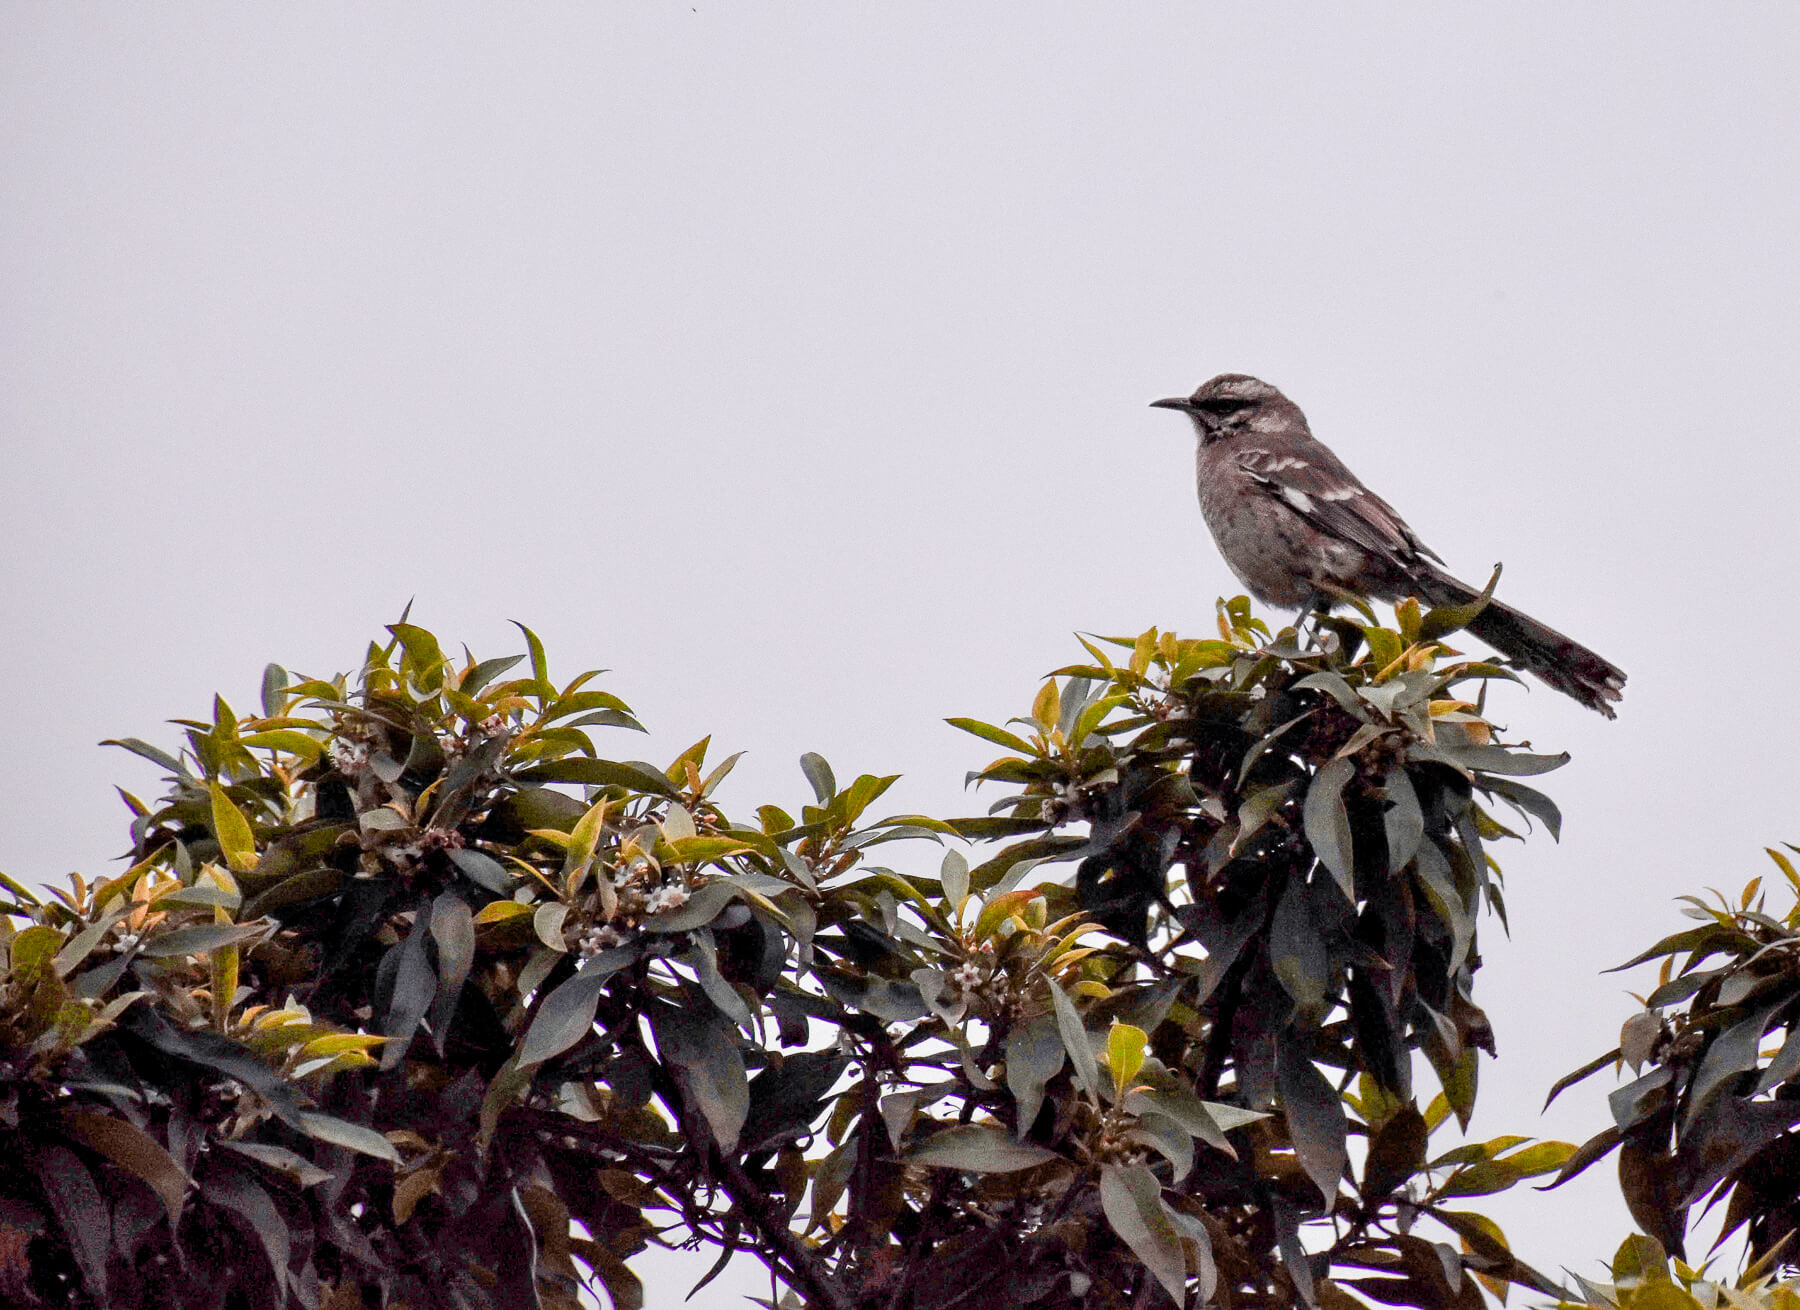 A small brown bird looking to the left while perched on top of a tree